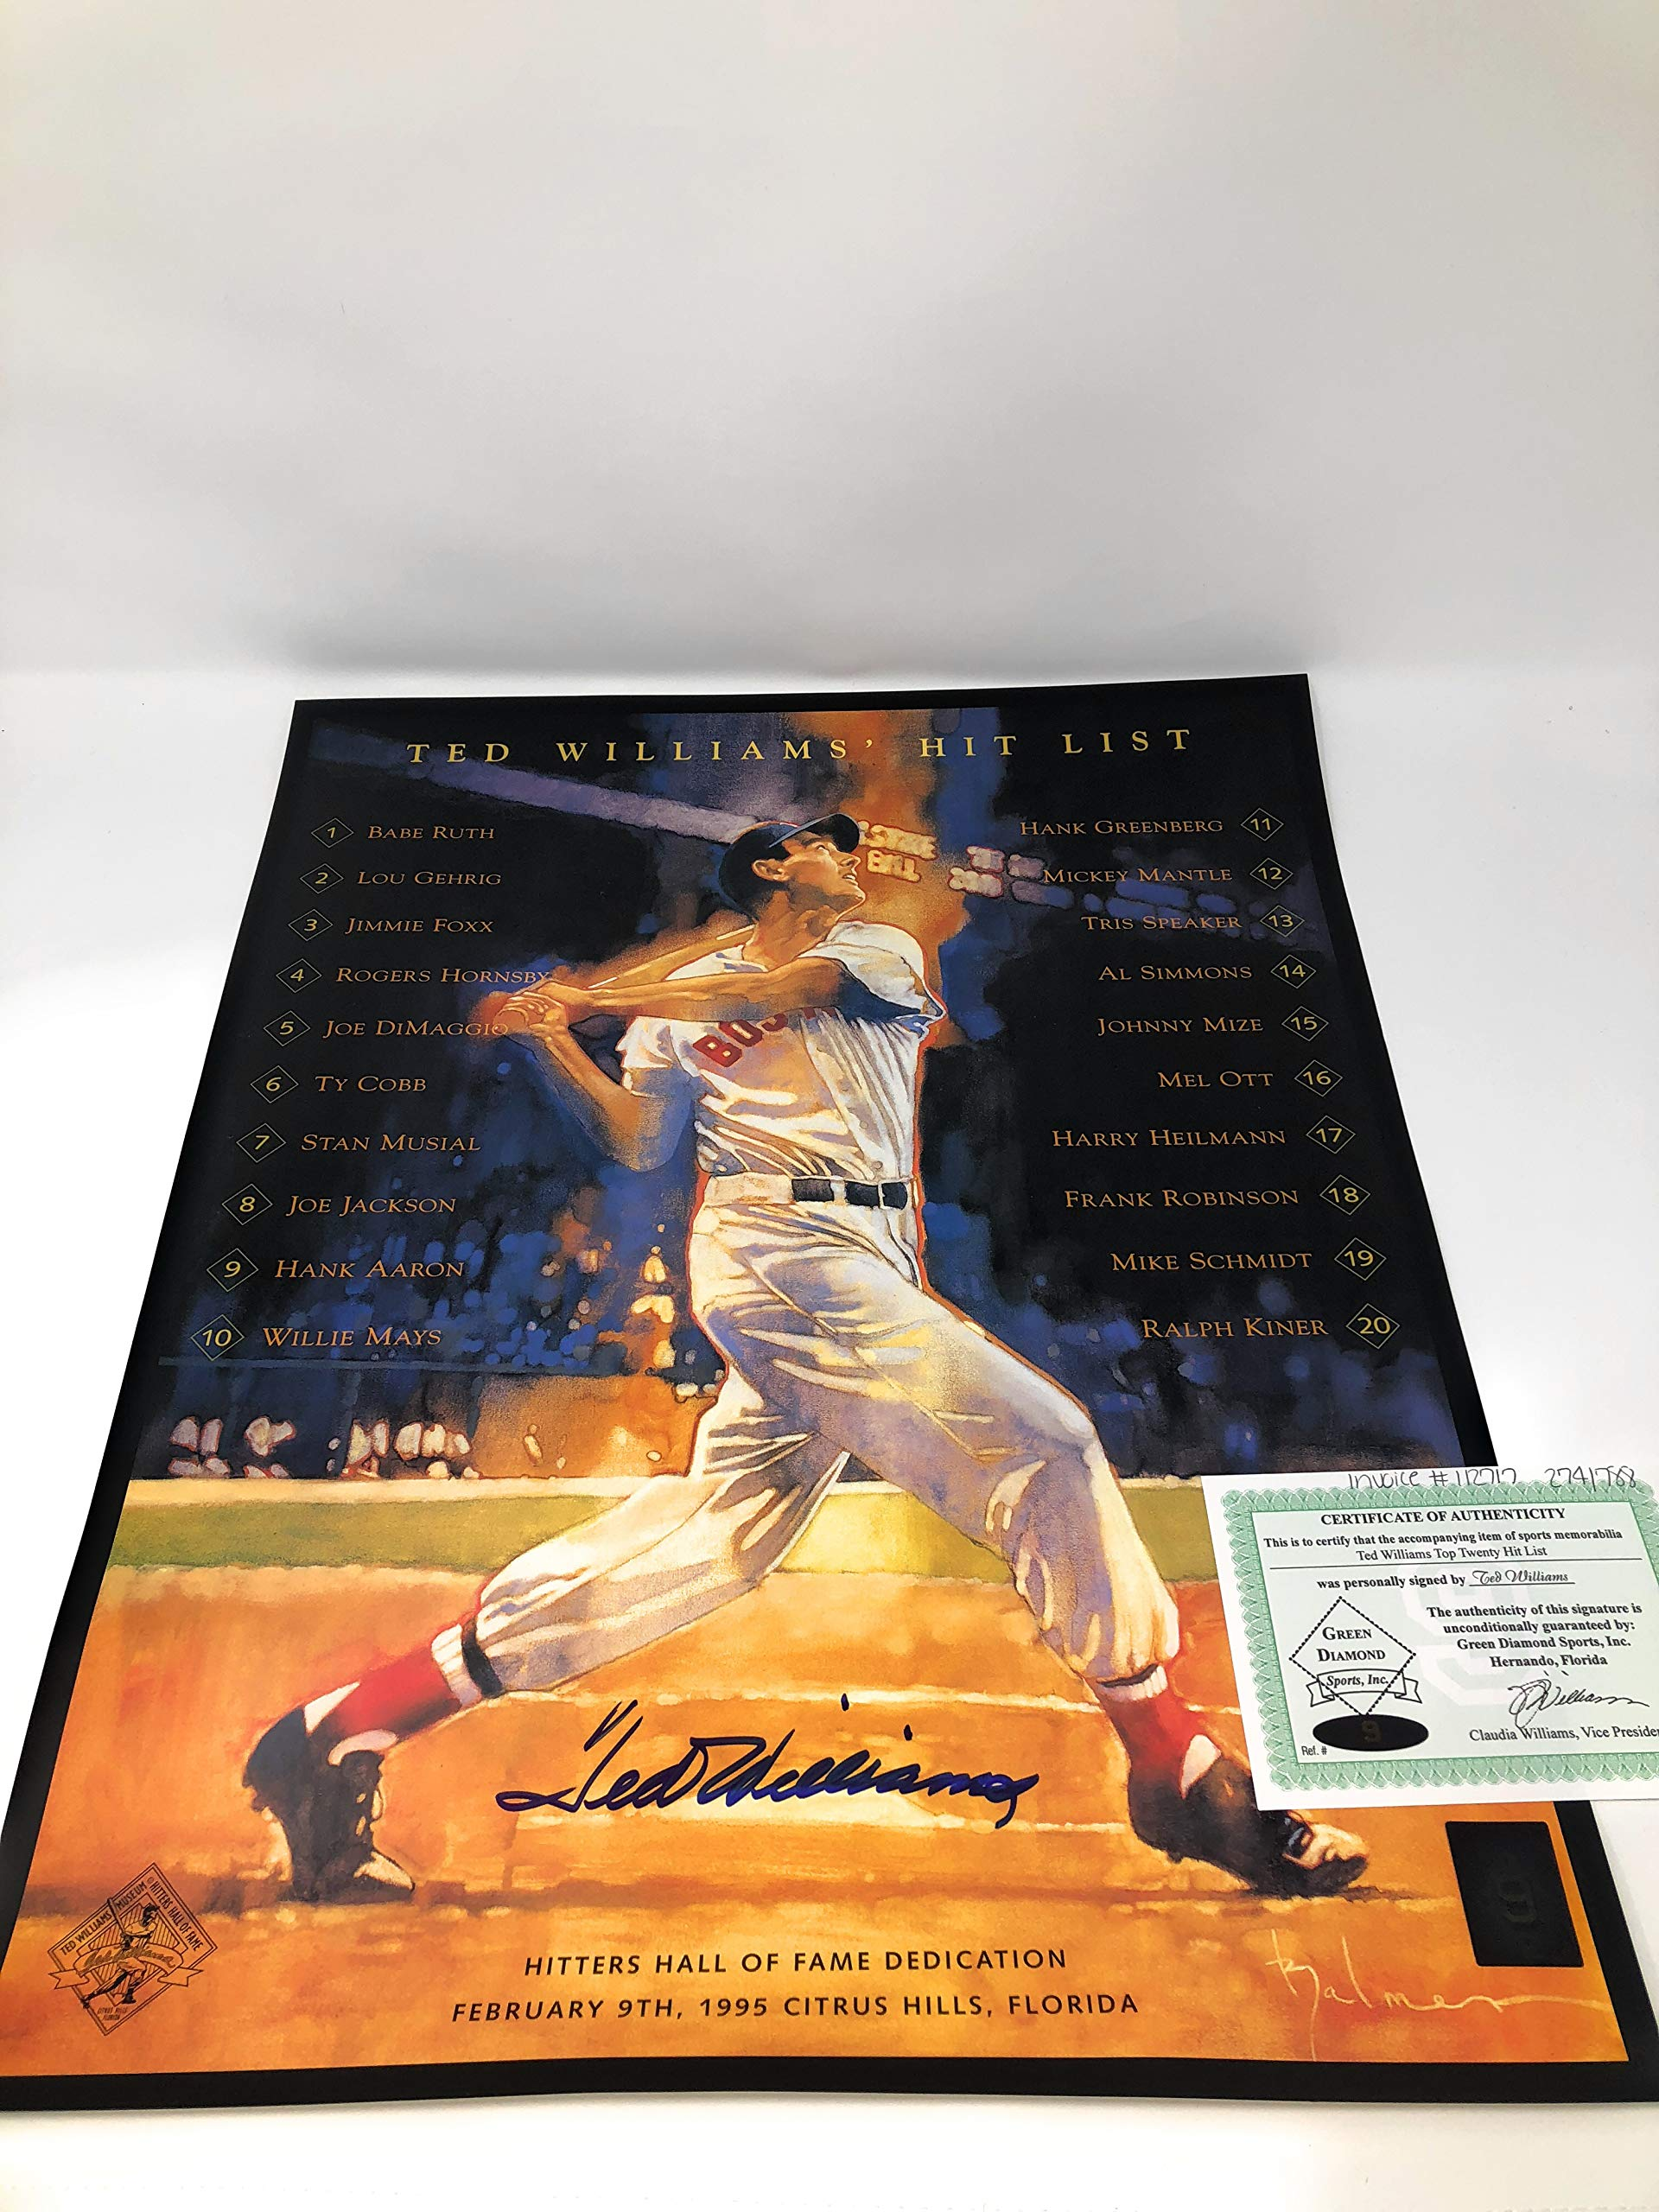 Ted Williams Boston Red Sox Signed Autograph 16x20 Photo Photograph Green Diamond Williams Certified